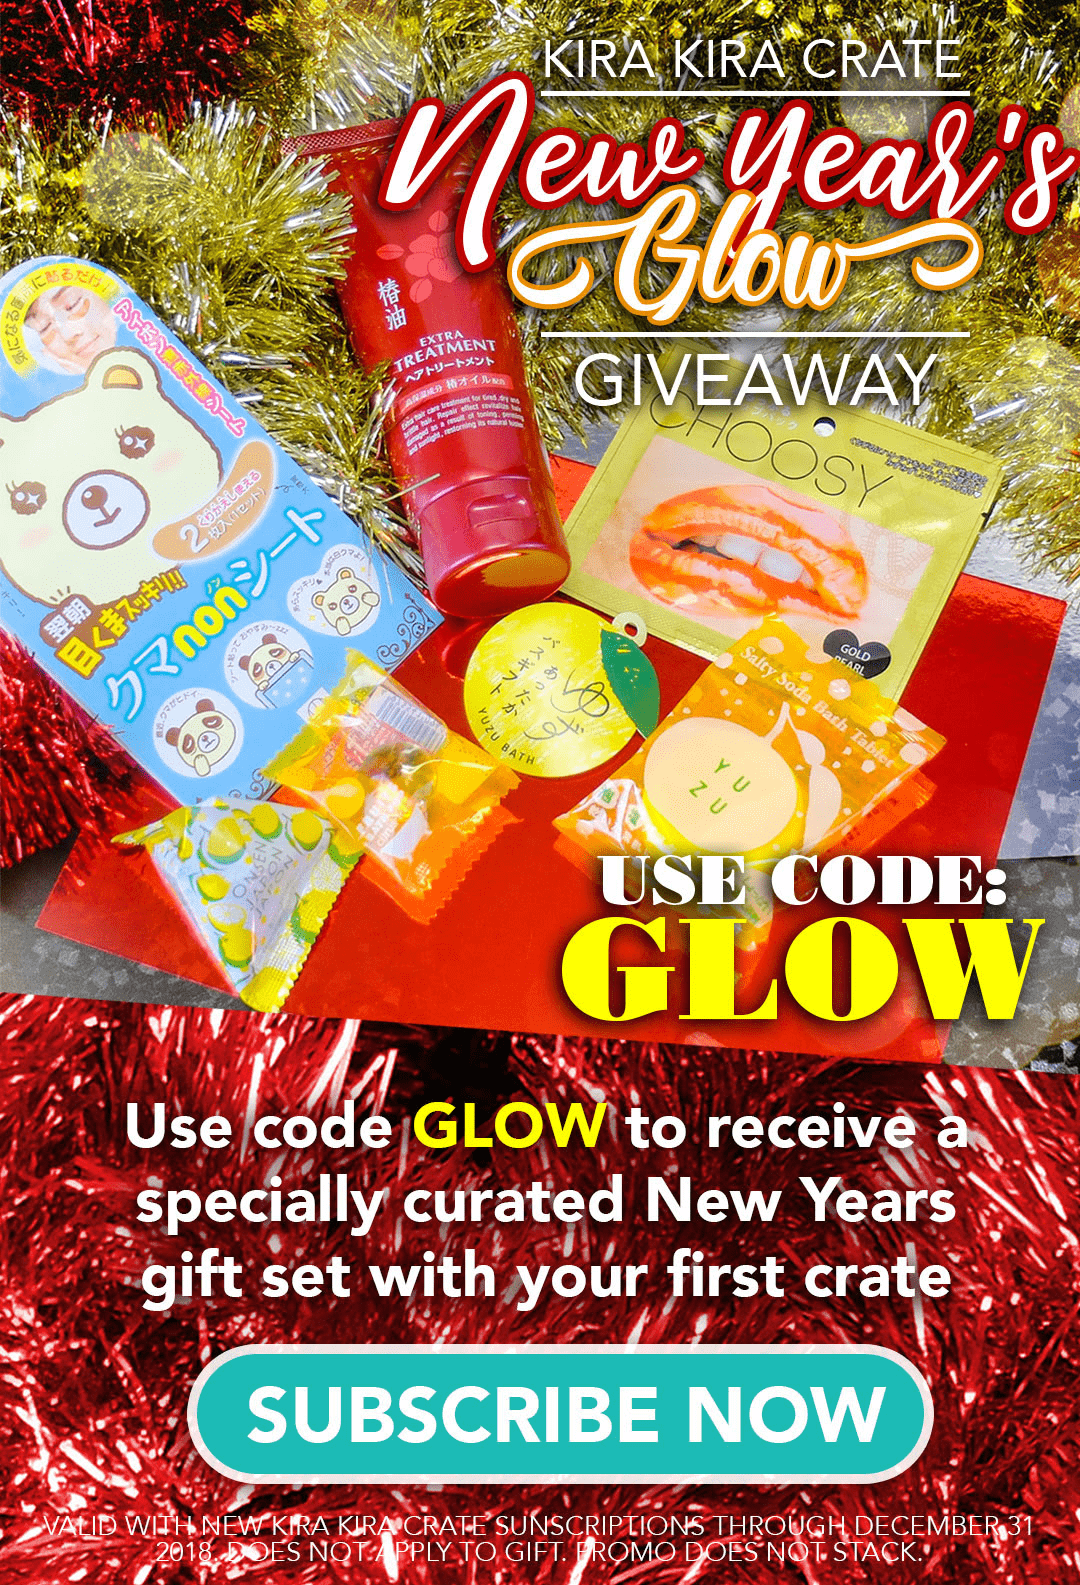 Kira Kira Crate Coupon: Get a 4-Piece Beauty Bundle With Your January 2019 Box!